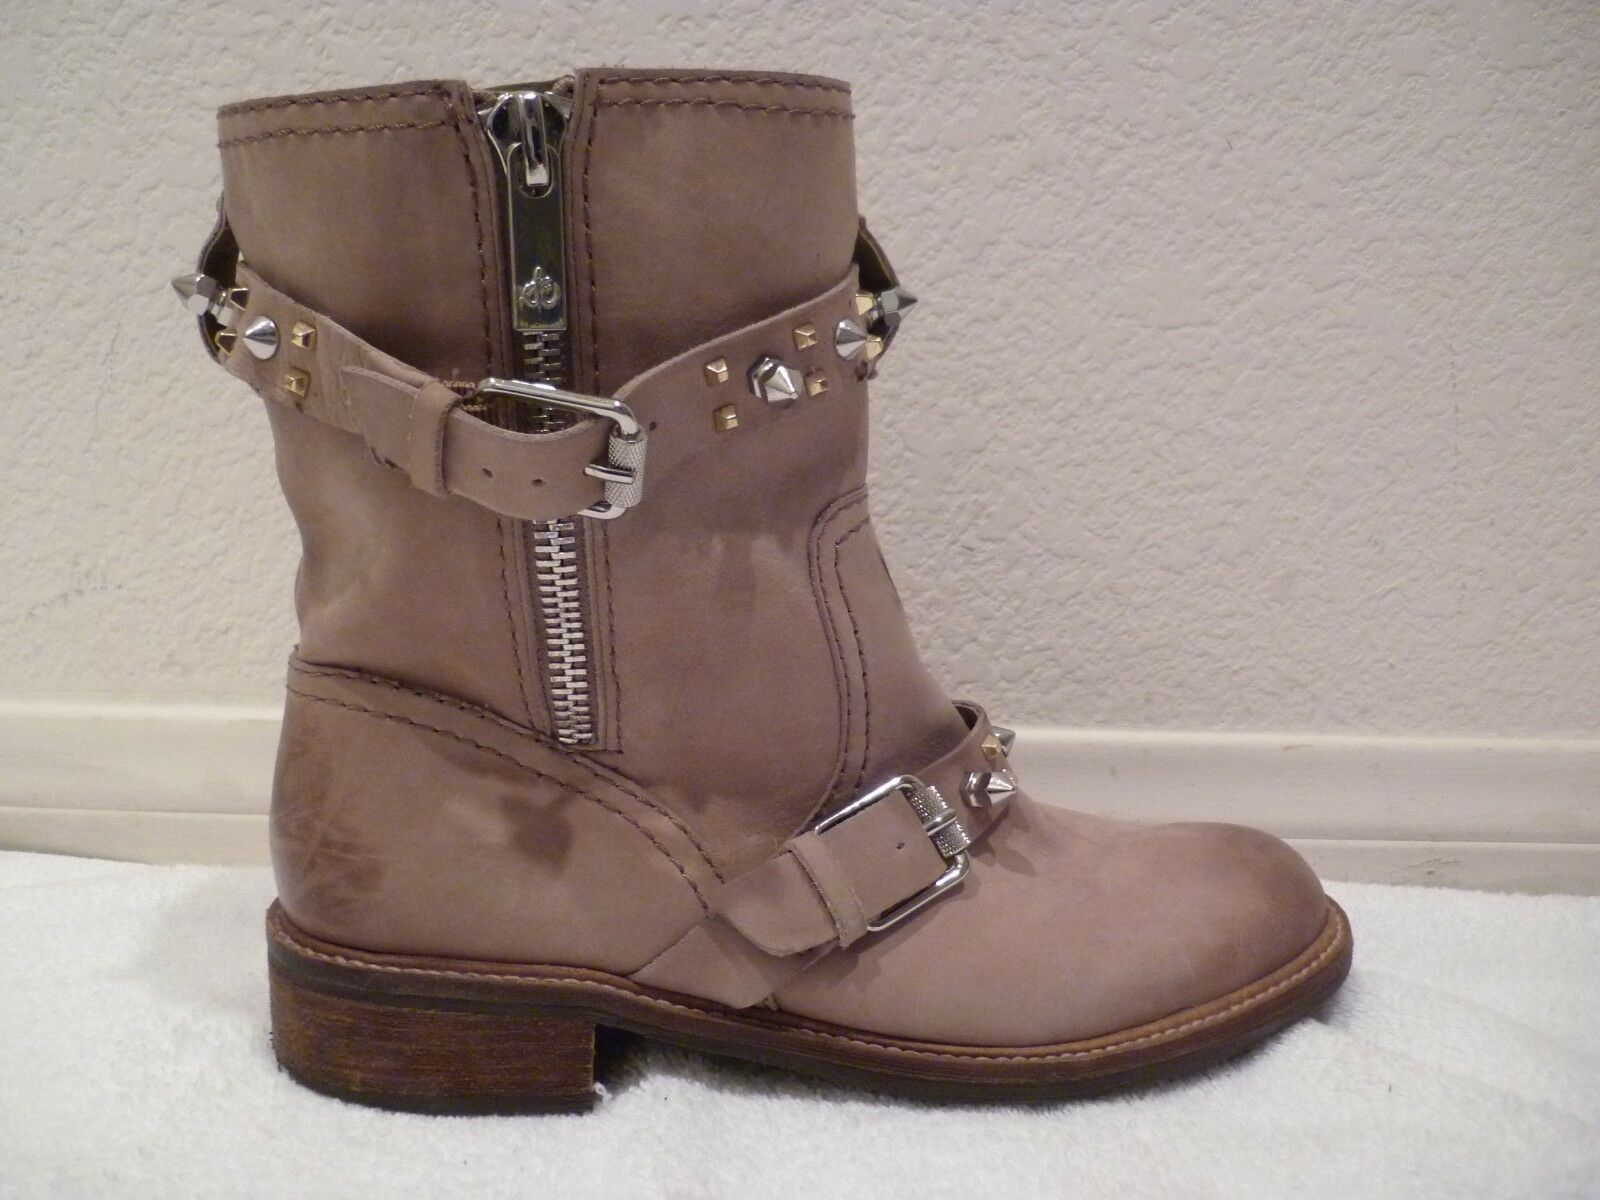 Sam Edelman 'Adele' Moto Suede spike Boot- brown tan - Size 7.5